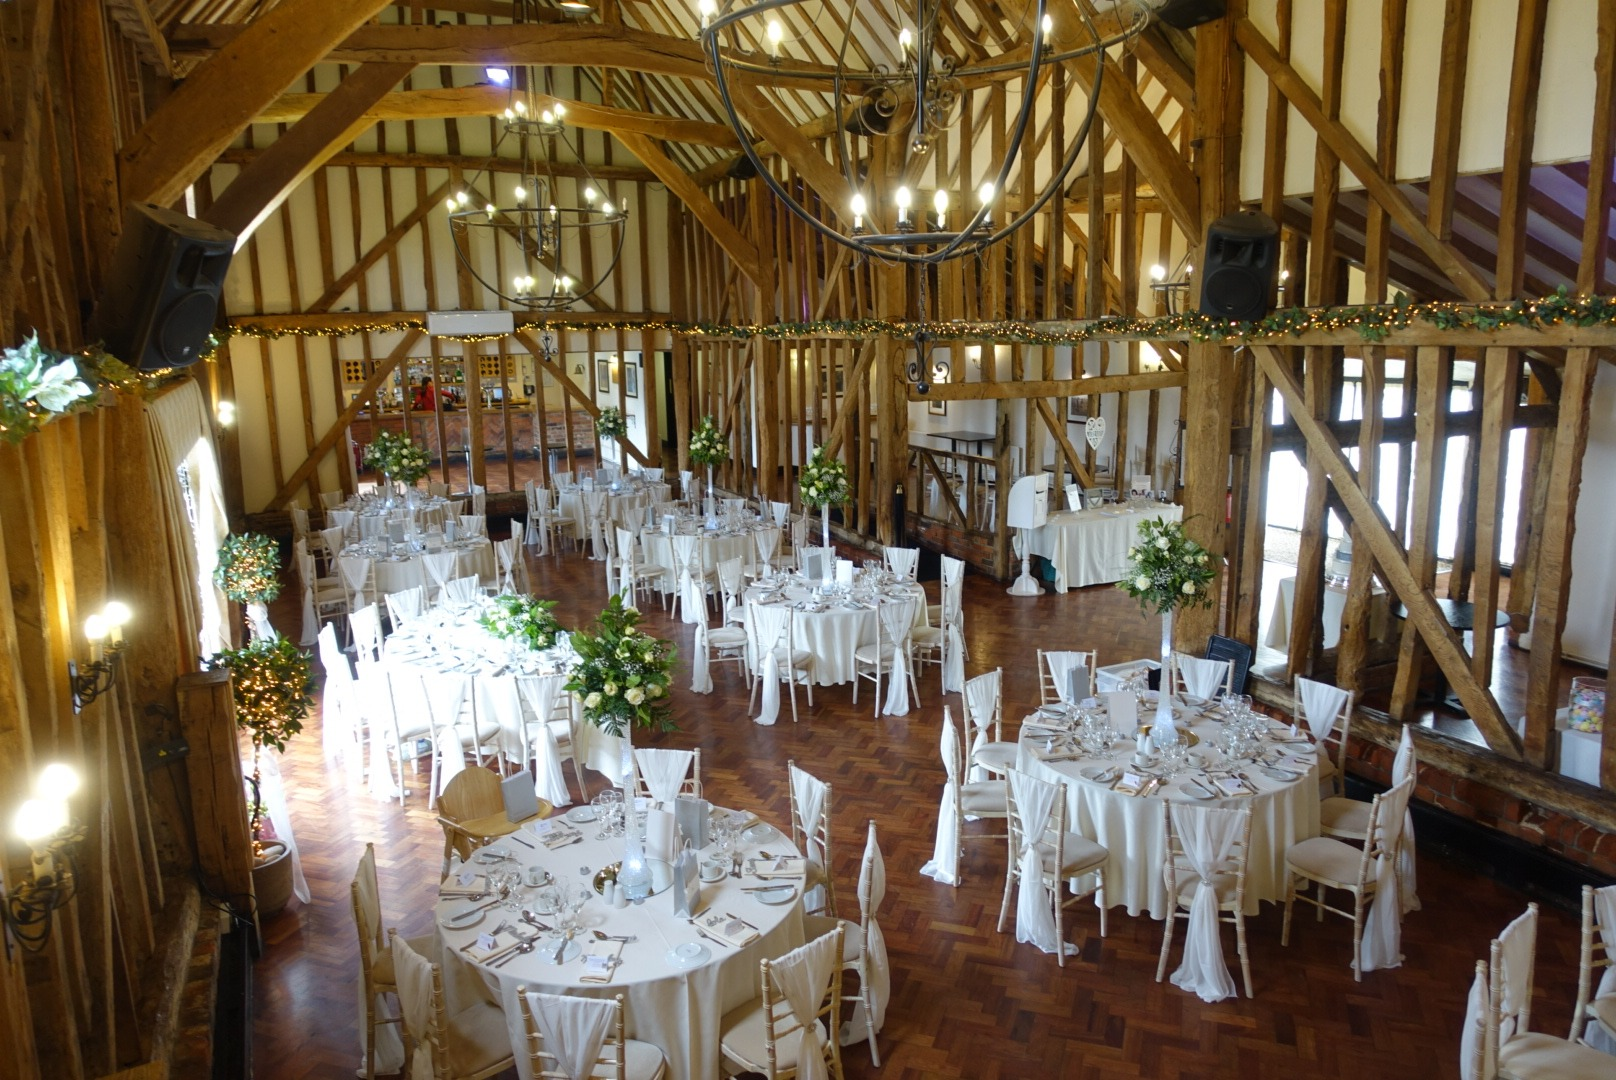 Golf club course in essex top wedding venue crondon park for Top wedding venues in the us